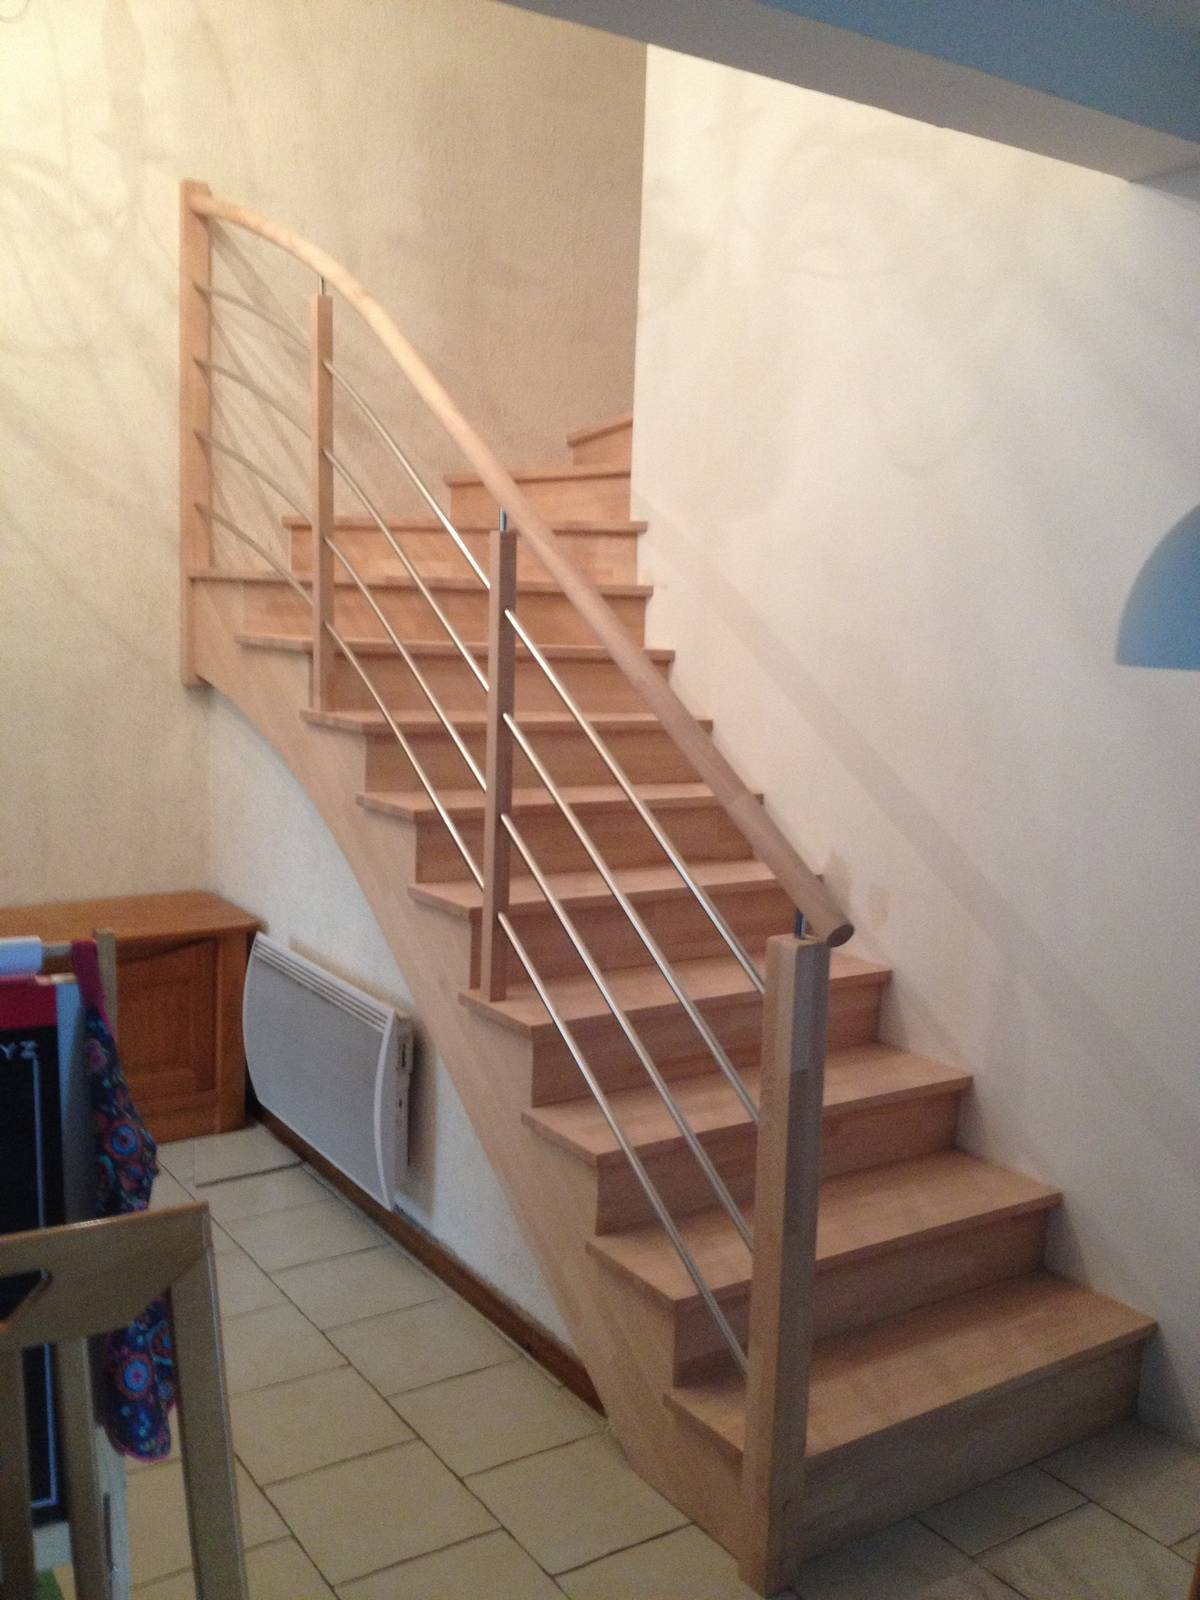 Habillage escalier beton en bois simple maytop tiptop for Habillage escalier beton interieur